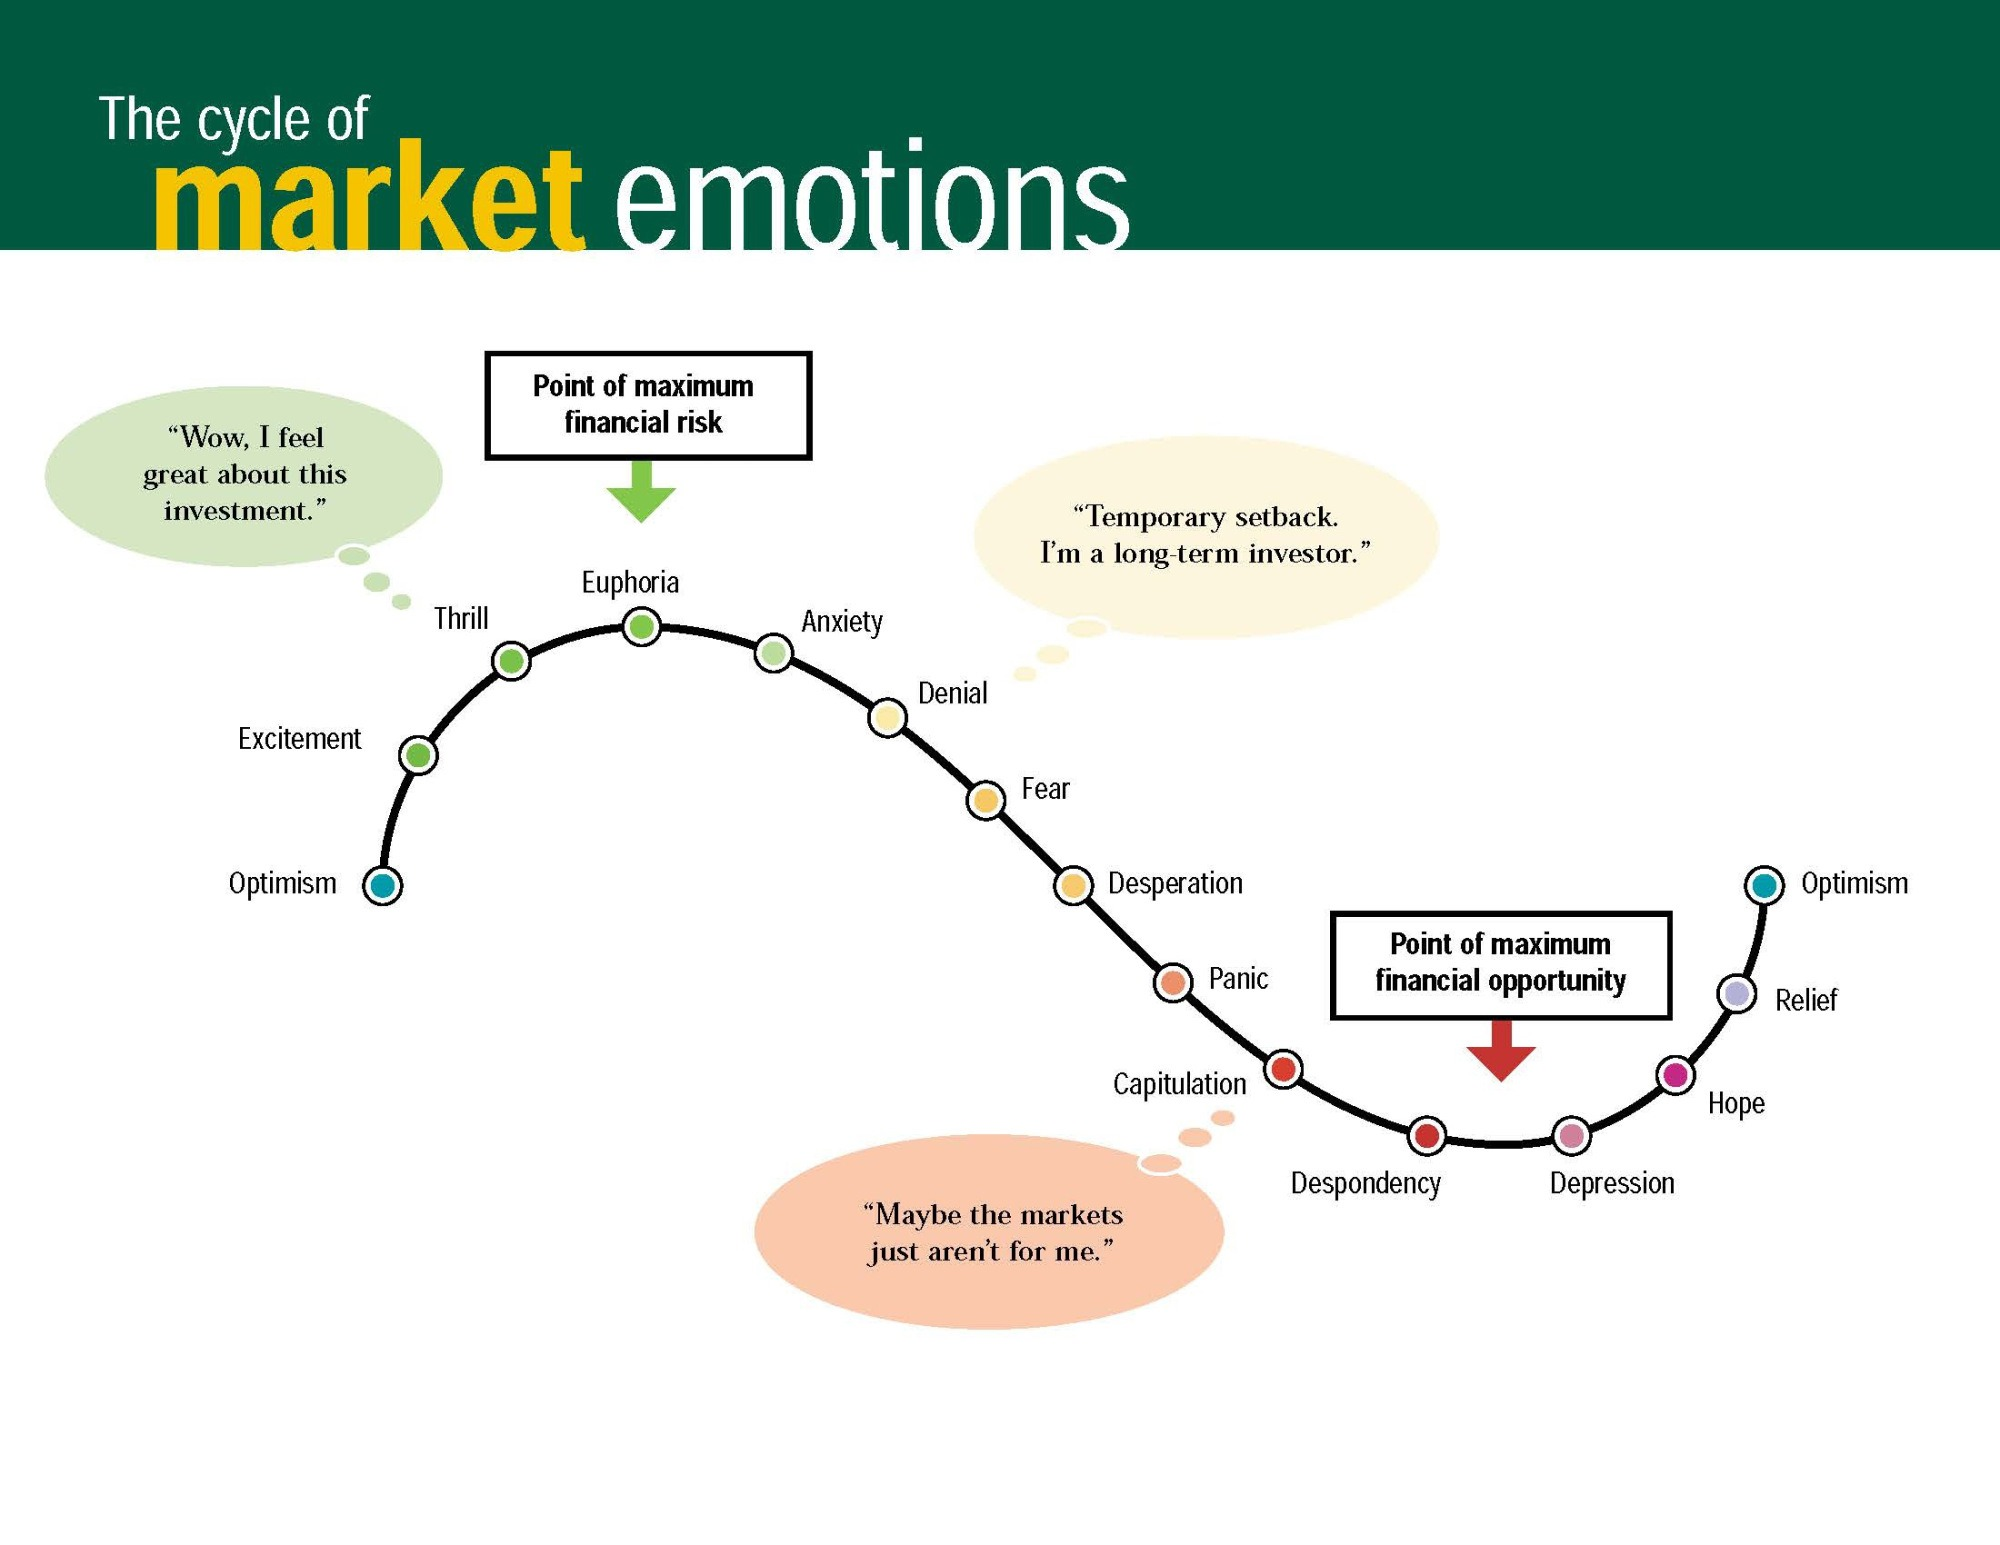 Does technical analysis work in crypto currency markets Chart 6 Cycle Of Market Emotions